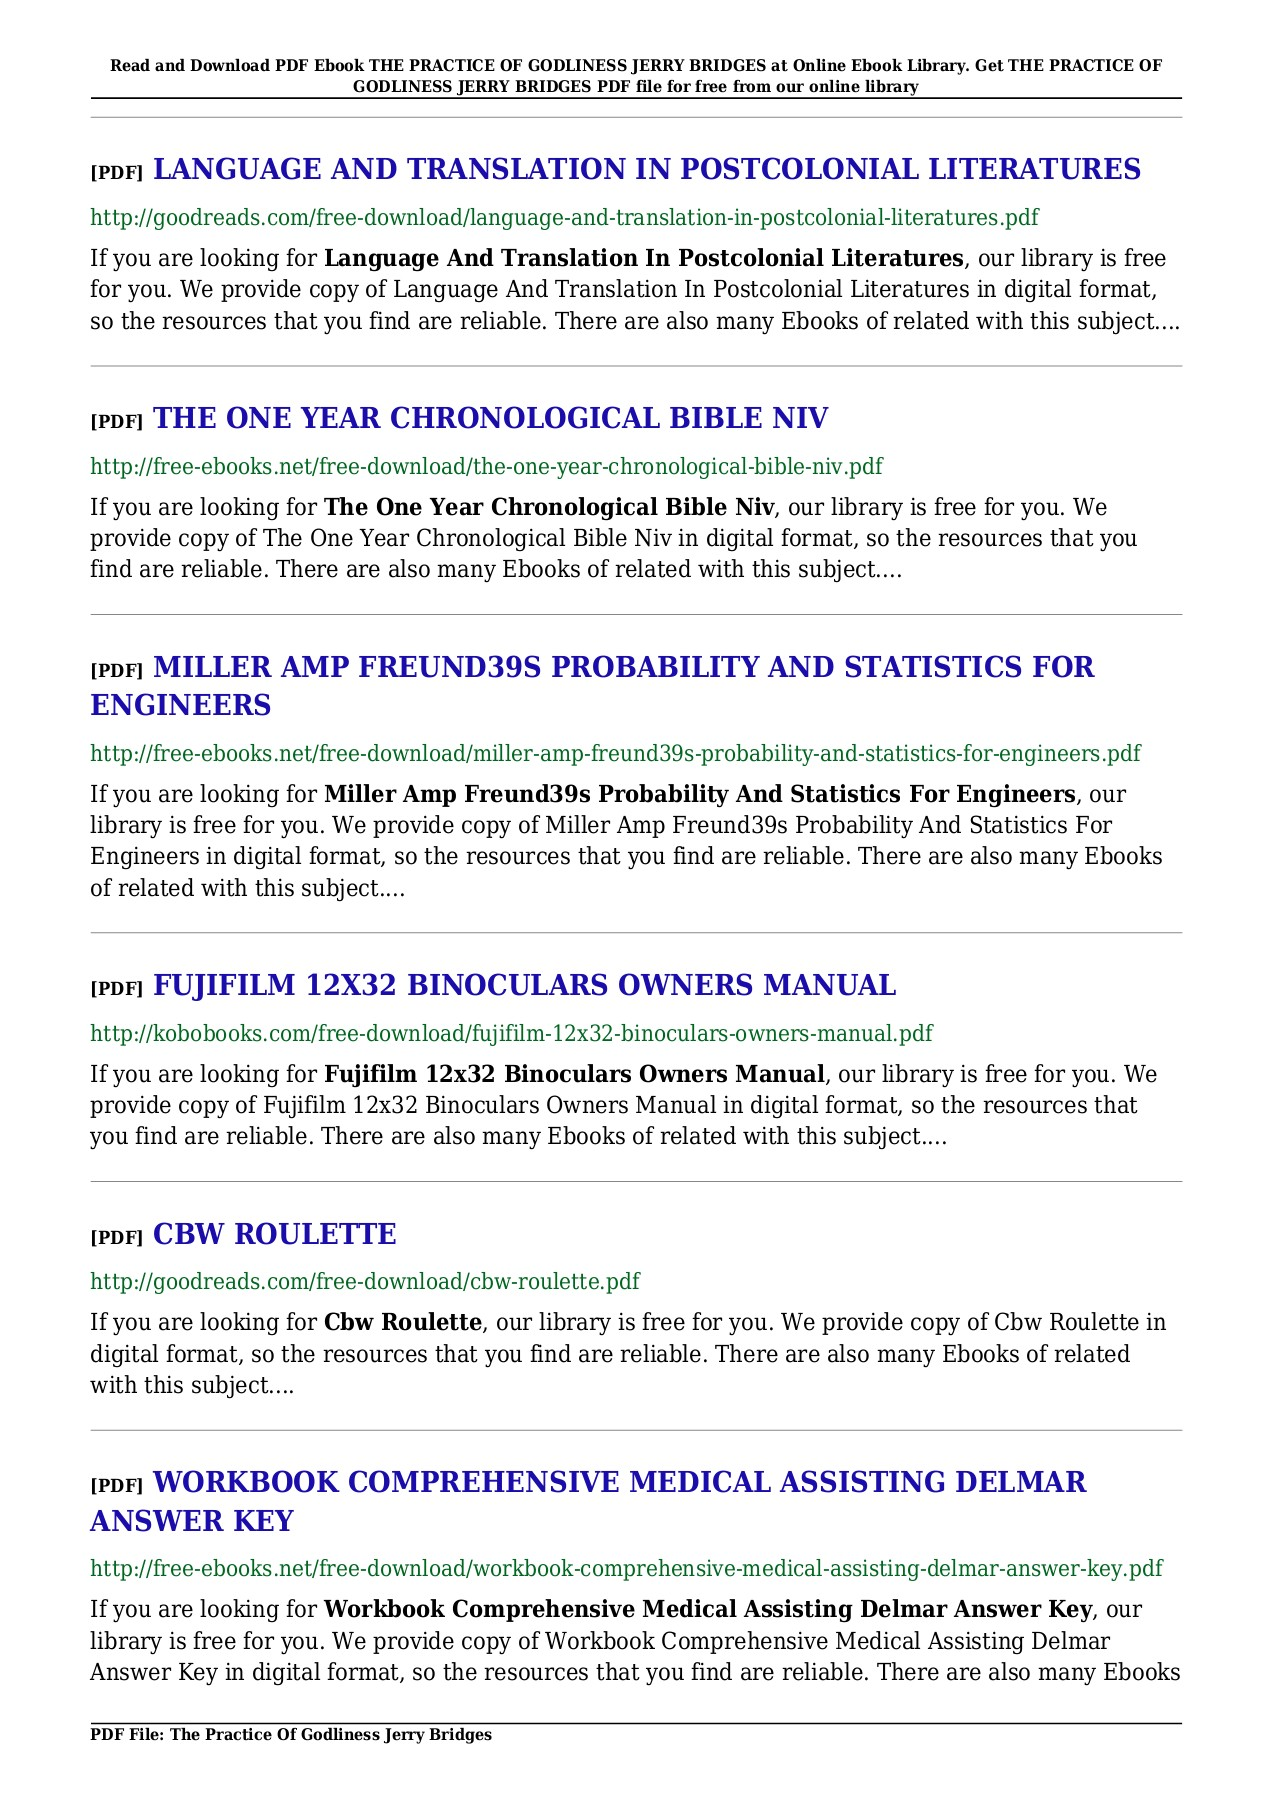 THE PRACTICE OF GODLINESS JERRY PDF - seecar xyz Pages 1